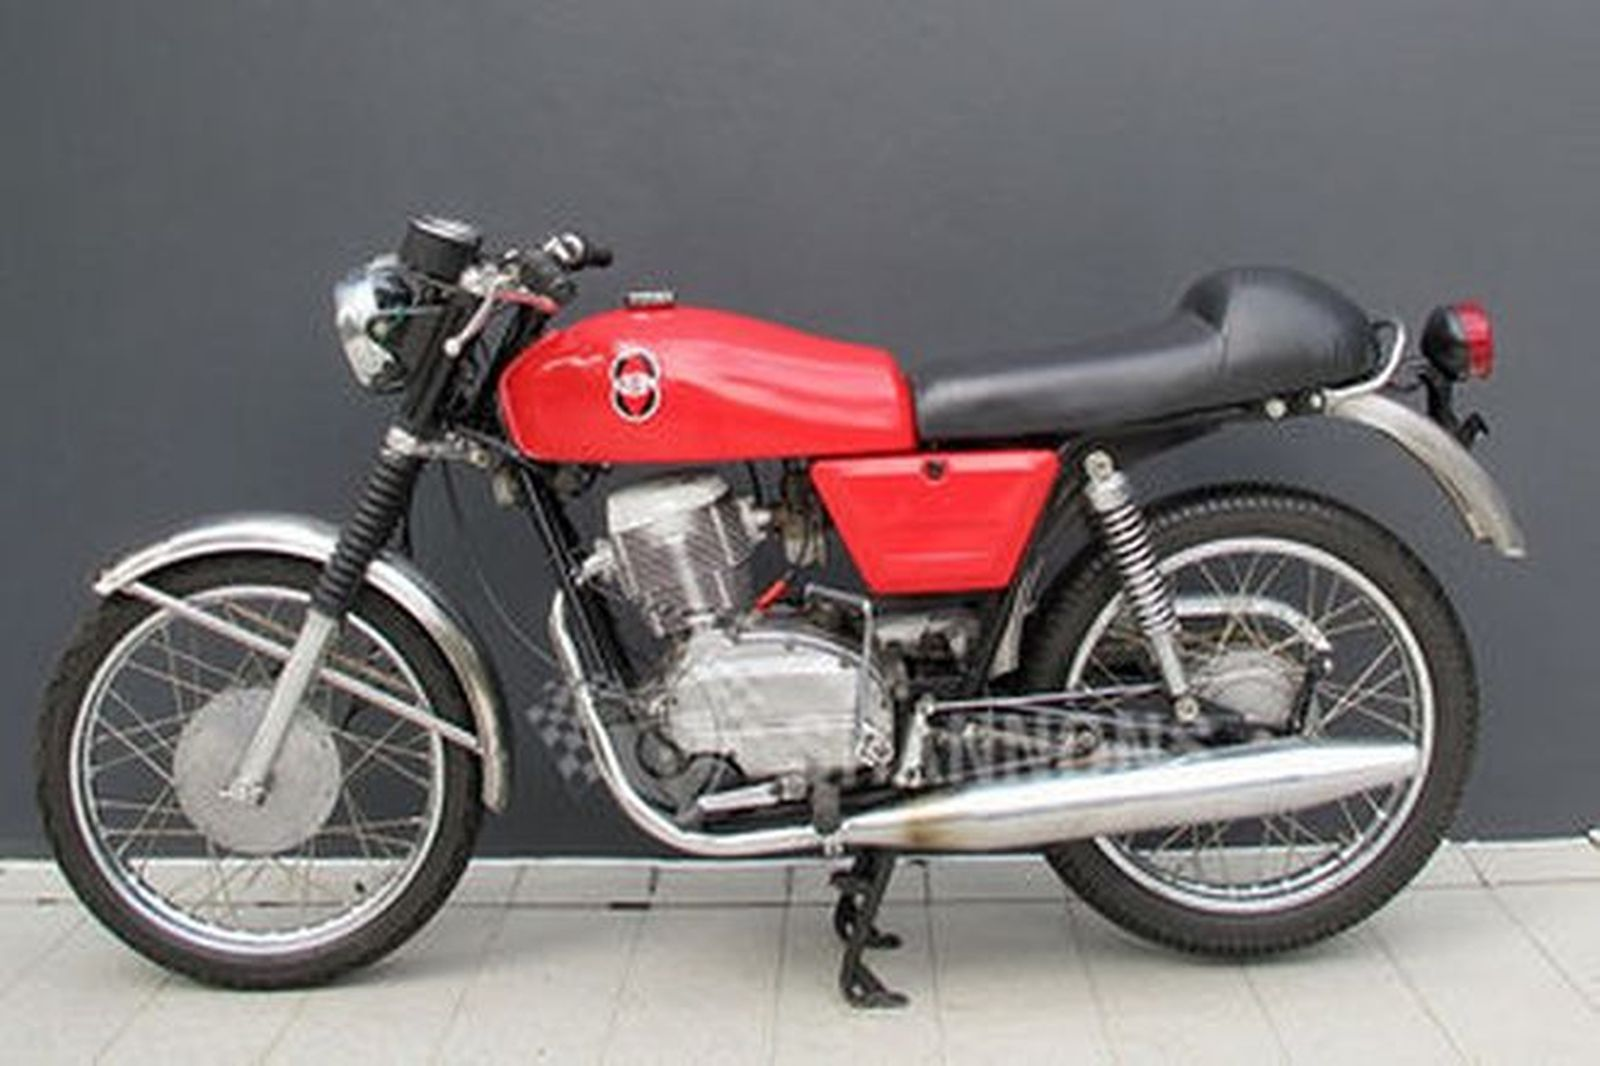 Sold: Gilera 150cc Motorcycle Auctions - Lot W - Shannons